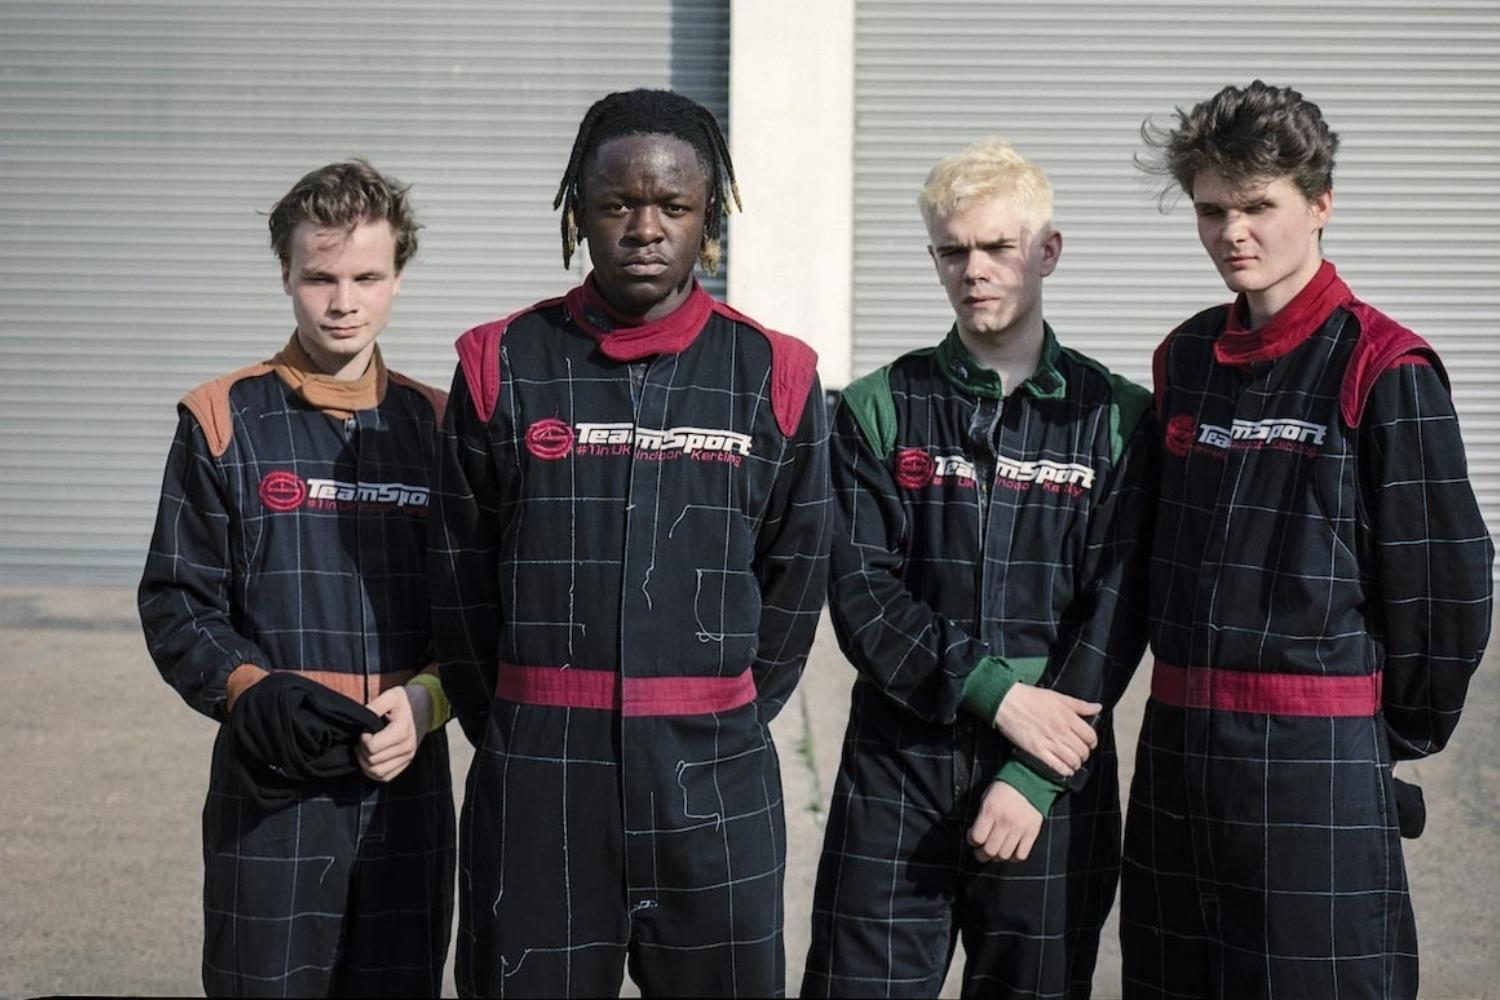 black midi send for Ed Sheeran on new track 'ded sheeran'